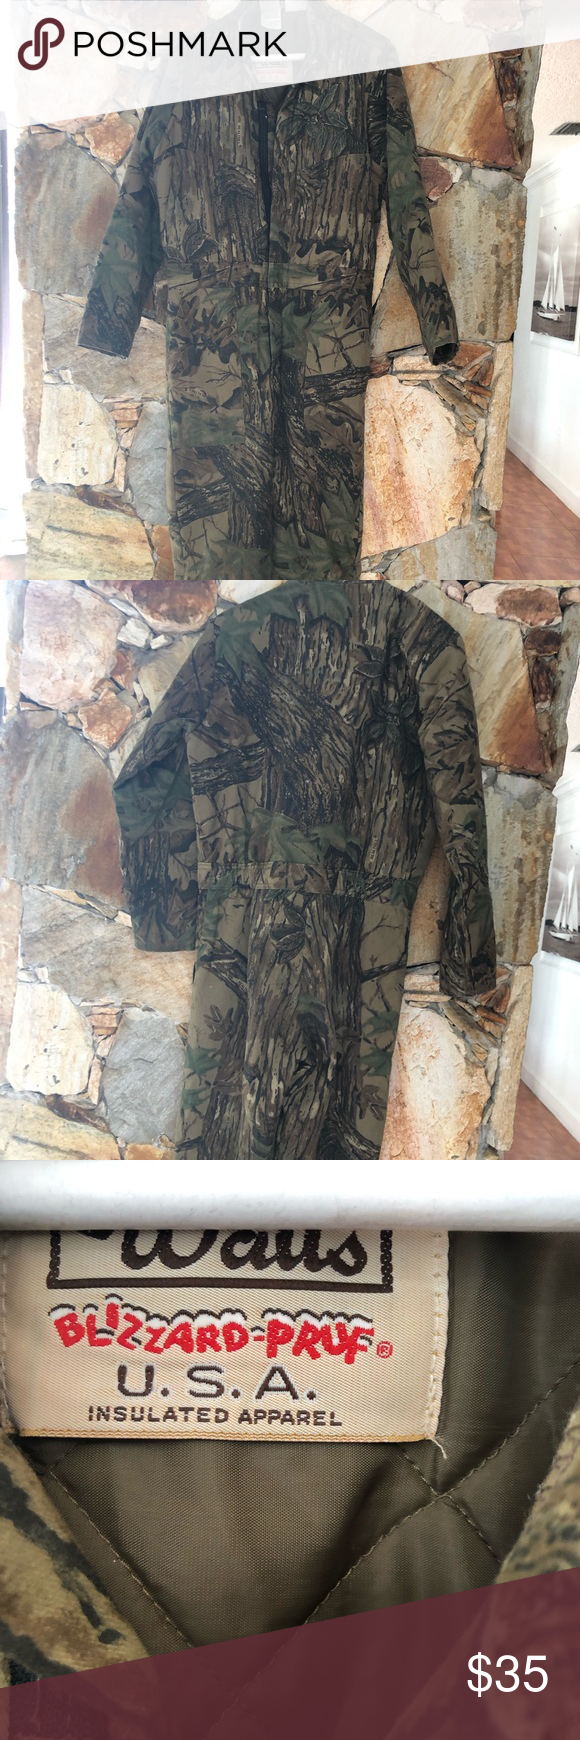 wall camouflage coveralls walls blizzard pruf usa on walls insulated coveralls blizzard pruf id=53679